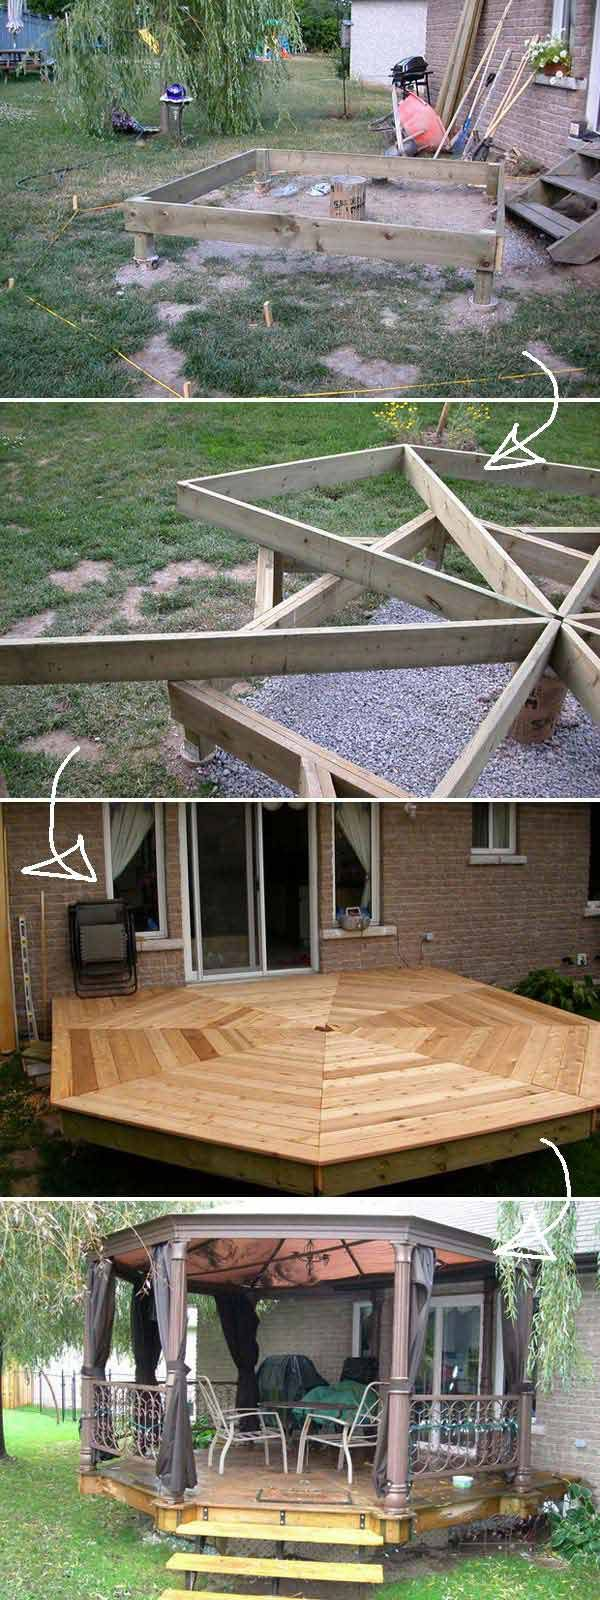 If you want to look for a place for hosting some small events and family parties, you will find there is no better choice than a floating deck. A floating deck is a nice corner in your backyard, patio or garden that makes your outdoor space more elegant, functional and enjoyable. It is a surprising […]